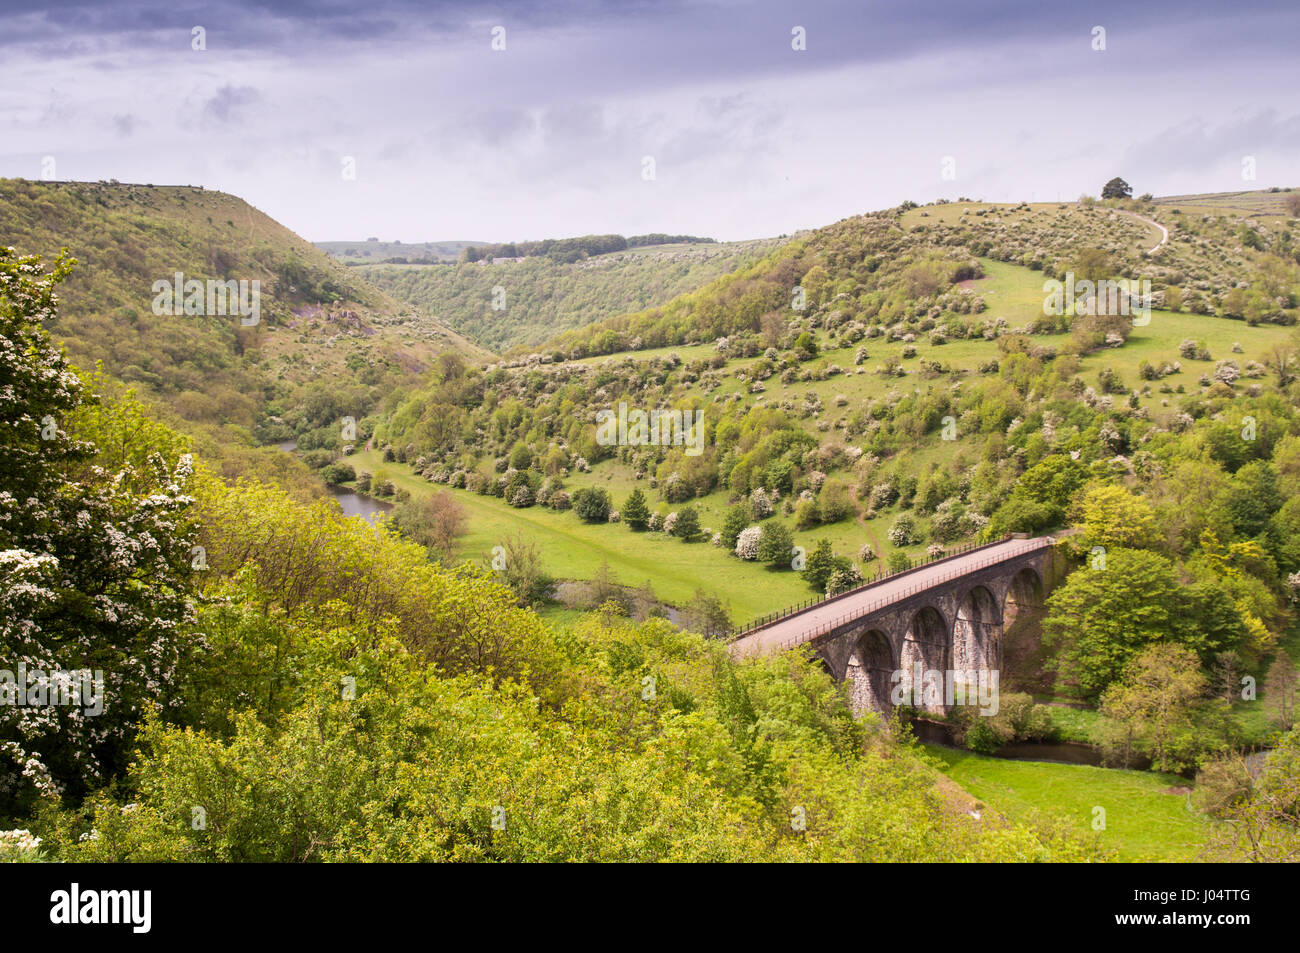 The Victorian Midland Railway Headstone Viaduct, now part of the Monsal Trail cycleway, in Monsal Dale in England's - Stock Image